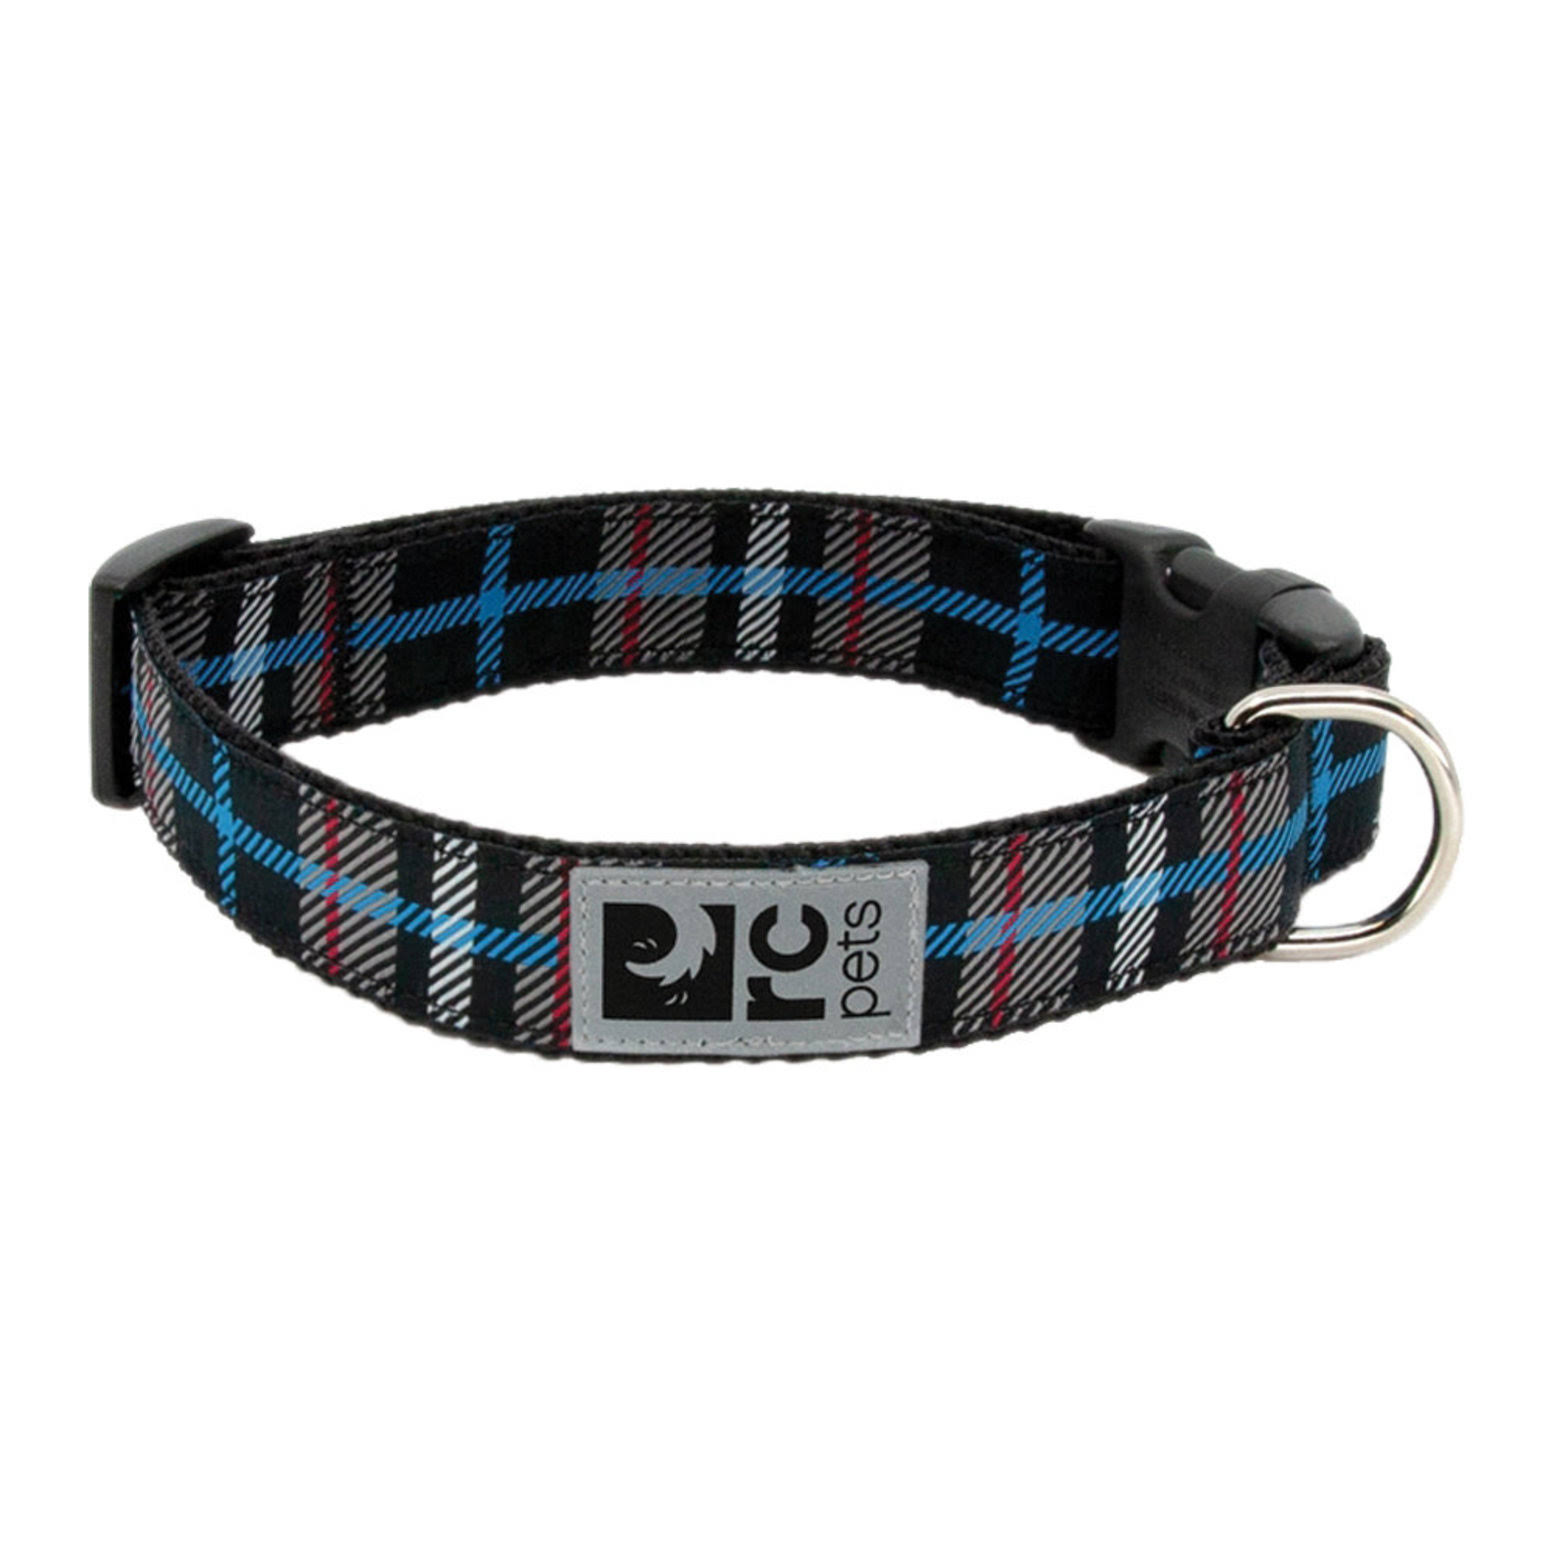 Black Twill Plaid Adjustable Clip Dog Collar by RC Pet - Medium